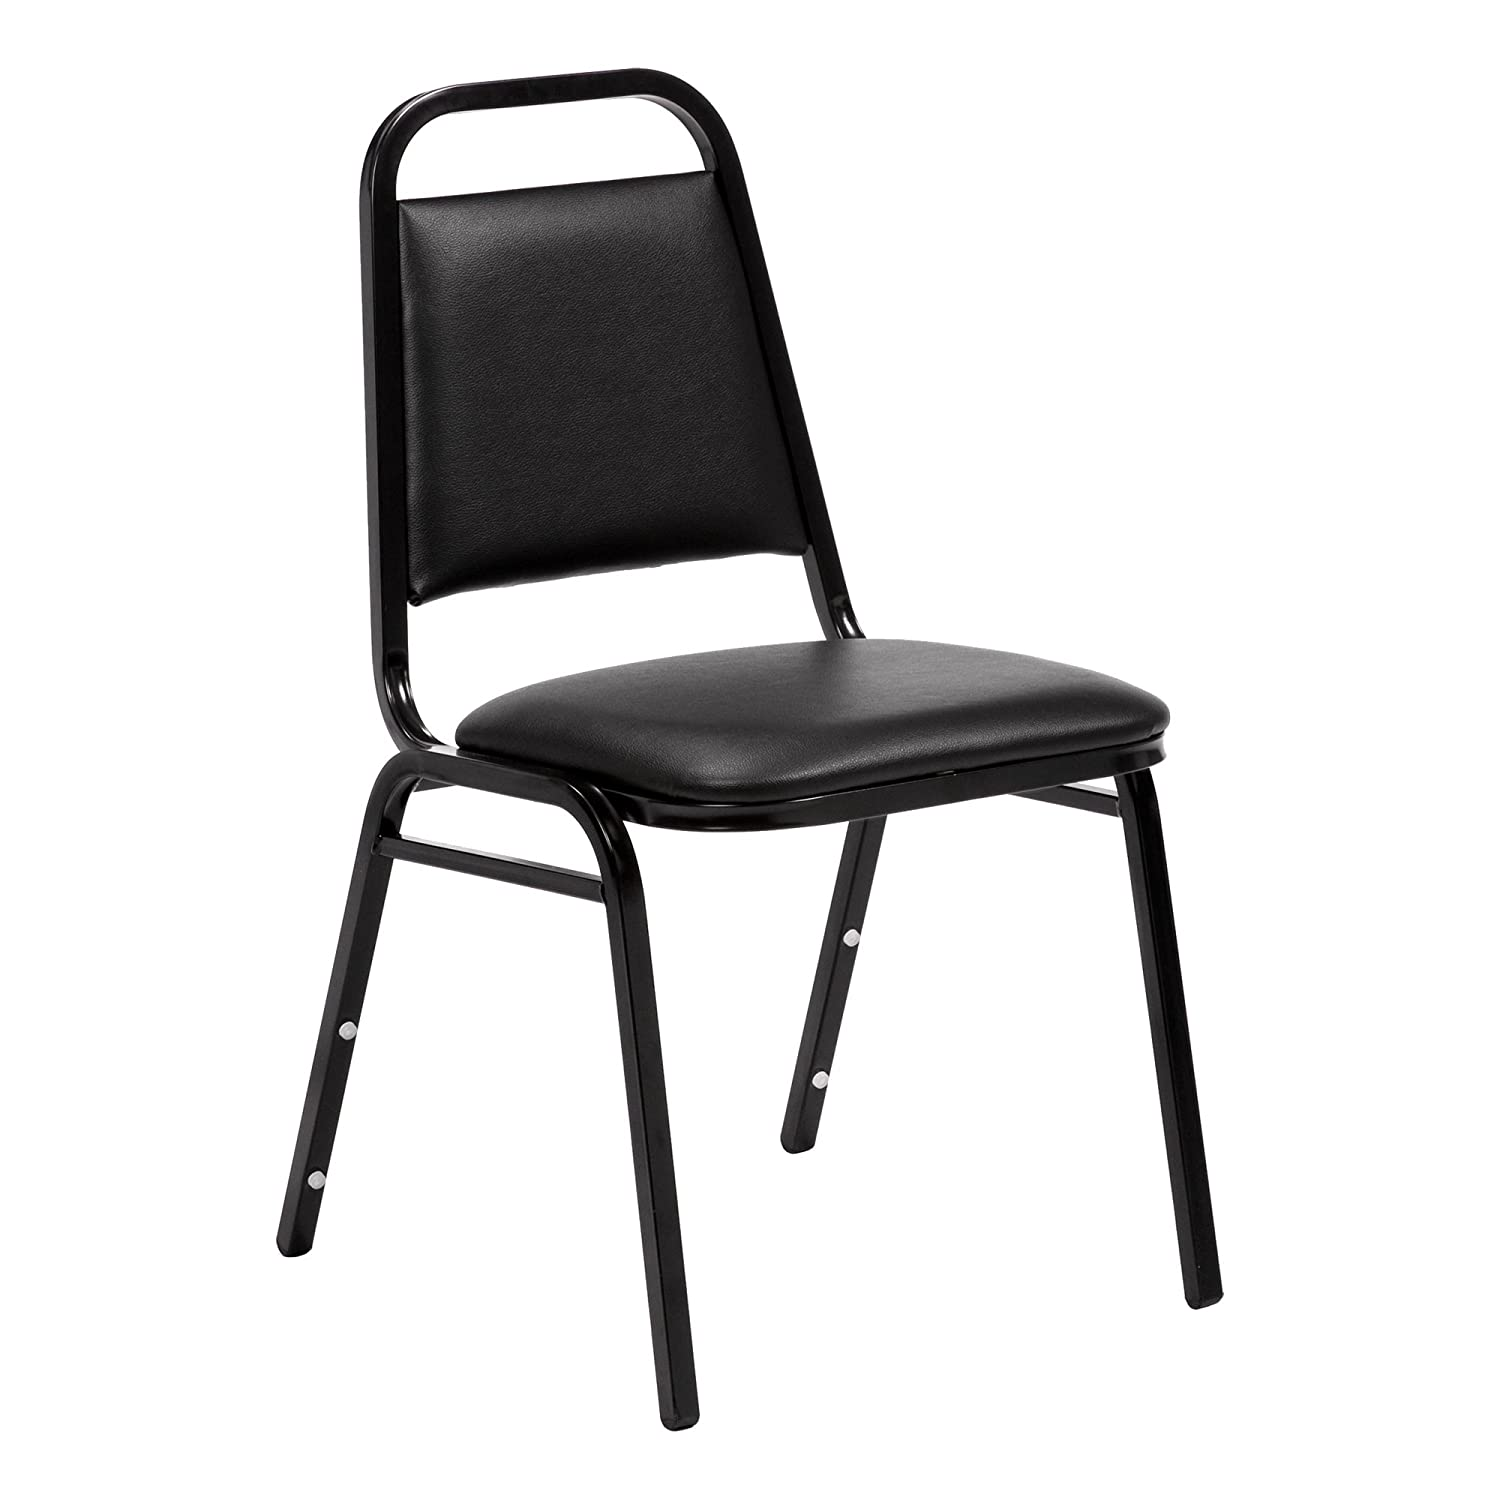 Norwood Commercial Furniture 150 Series Stack Chair, Black Vinyl, NCFSC1BLBLV (Pack of 4)